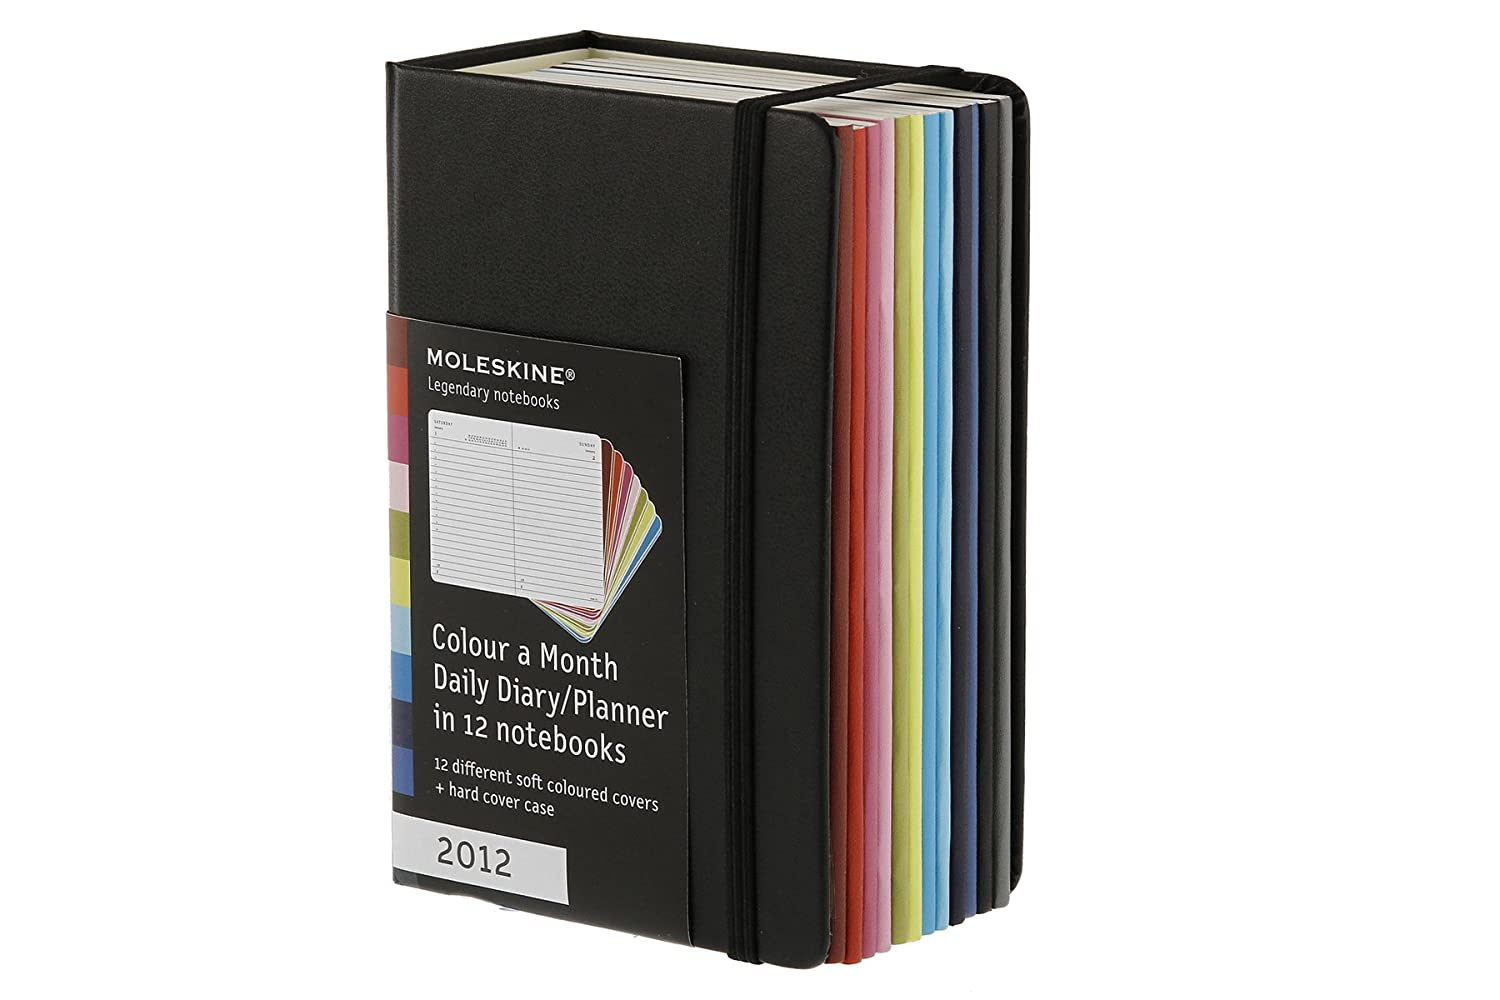 Moleskine 2012 12 Month Daily Planner Colour-A-Month: Set of 12 Monthly Planners